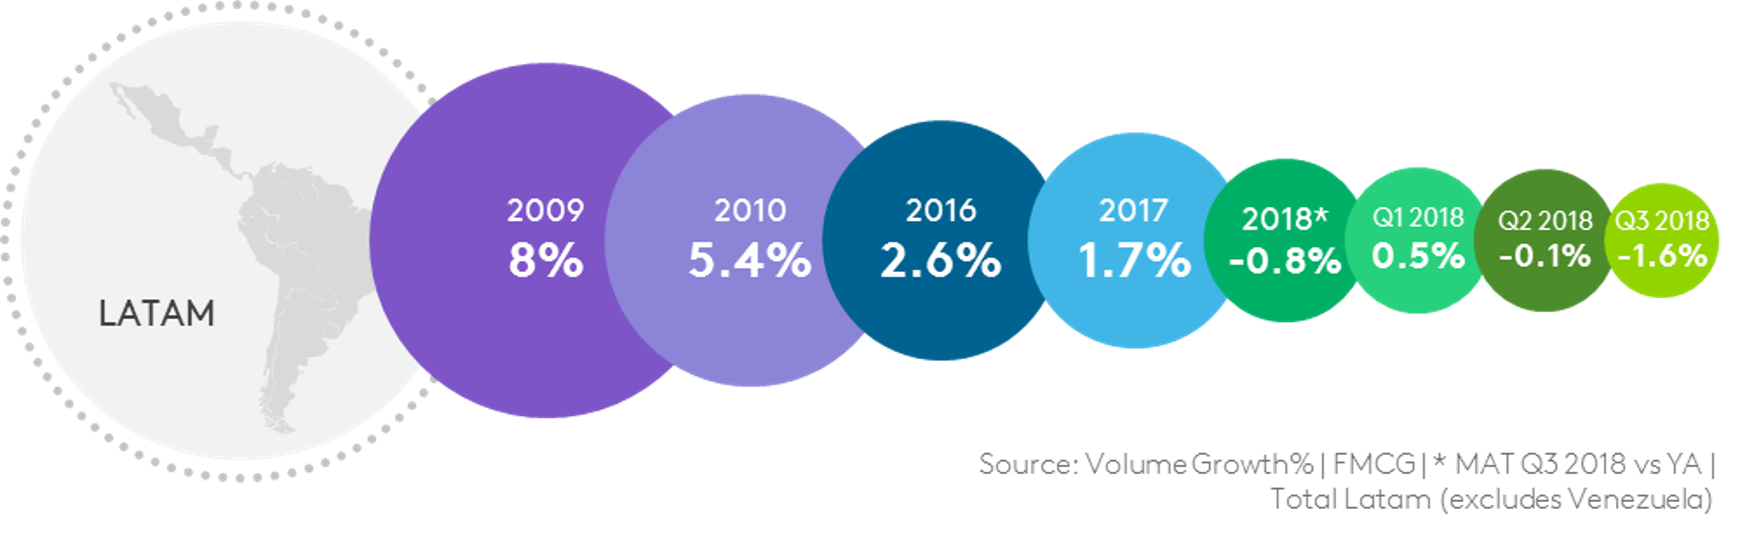 For the first time in ten years, volume consumption in #Latam did not grow